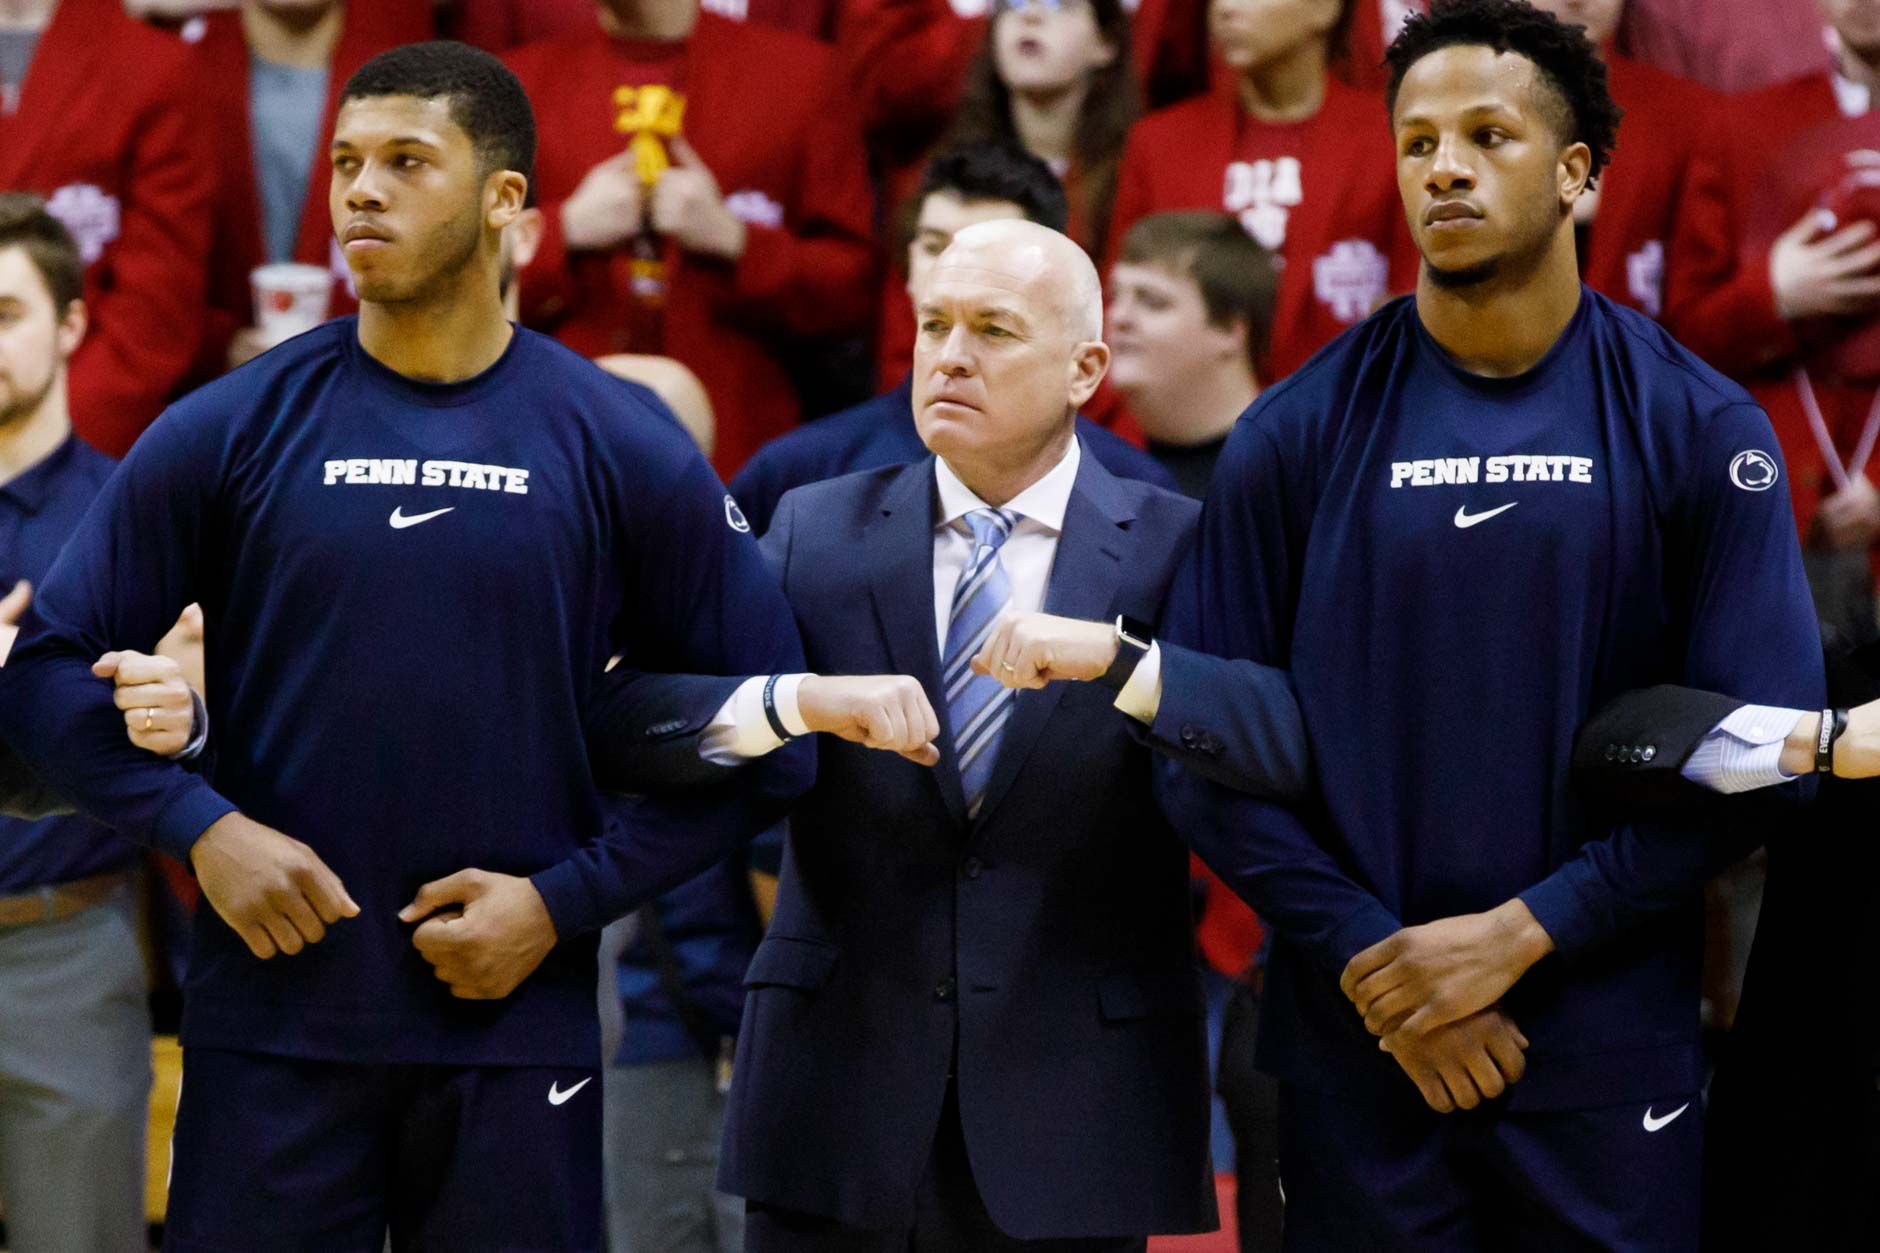 Penn State Head Coach Patrick Chambers, center, locks arms with Myles Dread, left, and Lamar Stevens during the National Anthem before a NCAA men's basketball game at Simon Skjodt Assembly Hall in Bloomington, Indiana on Sunday, Feb. 23, 2020. (Photo by James Brosher)